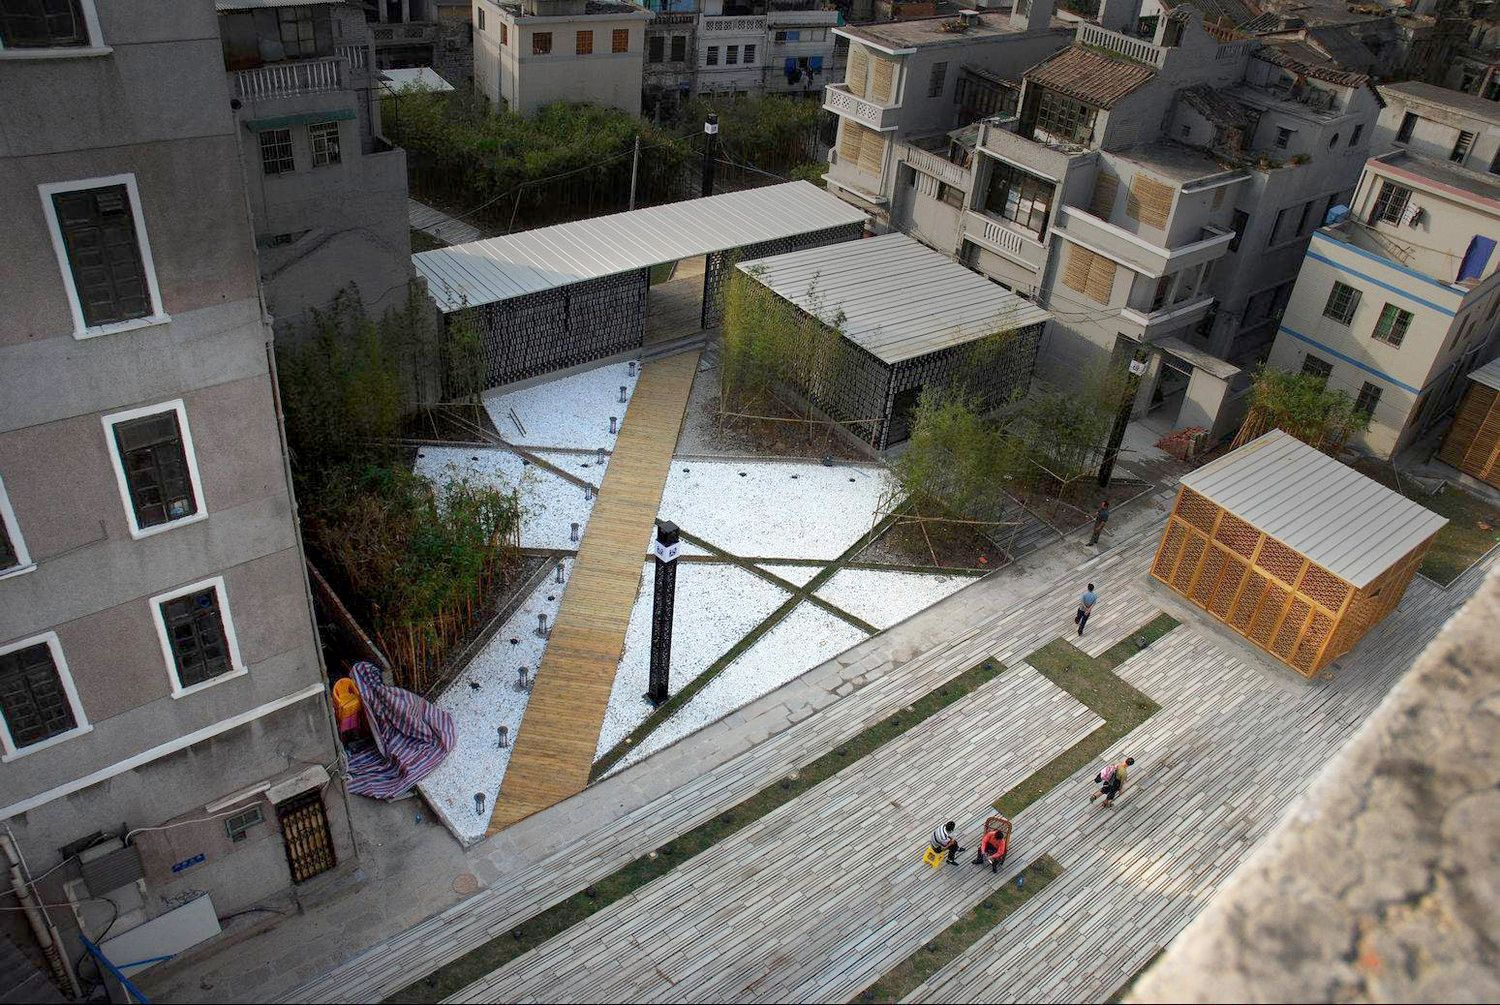 Enning Road Temporary Landscape by Atelier cnS | GARDENS ...